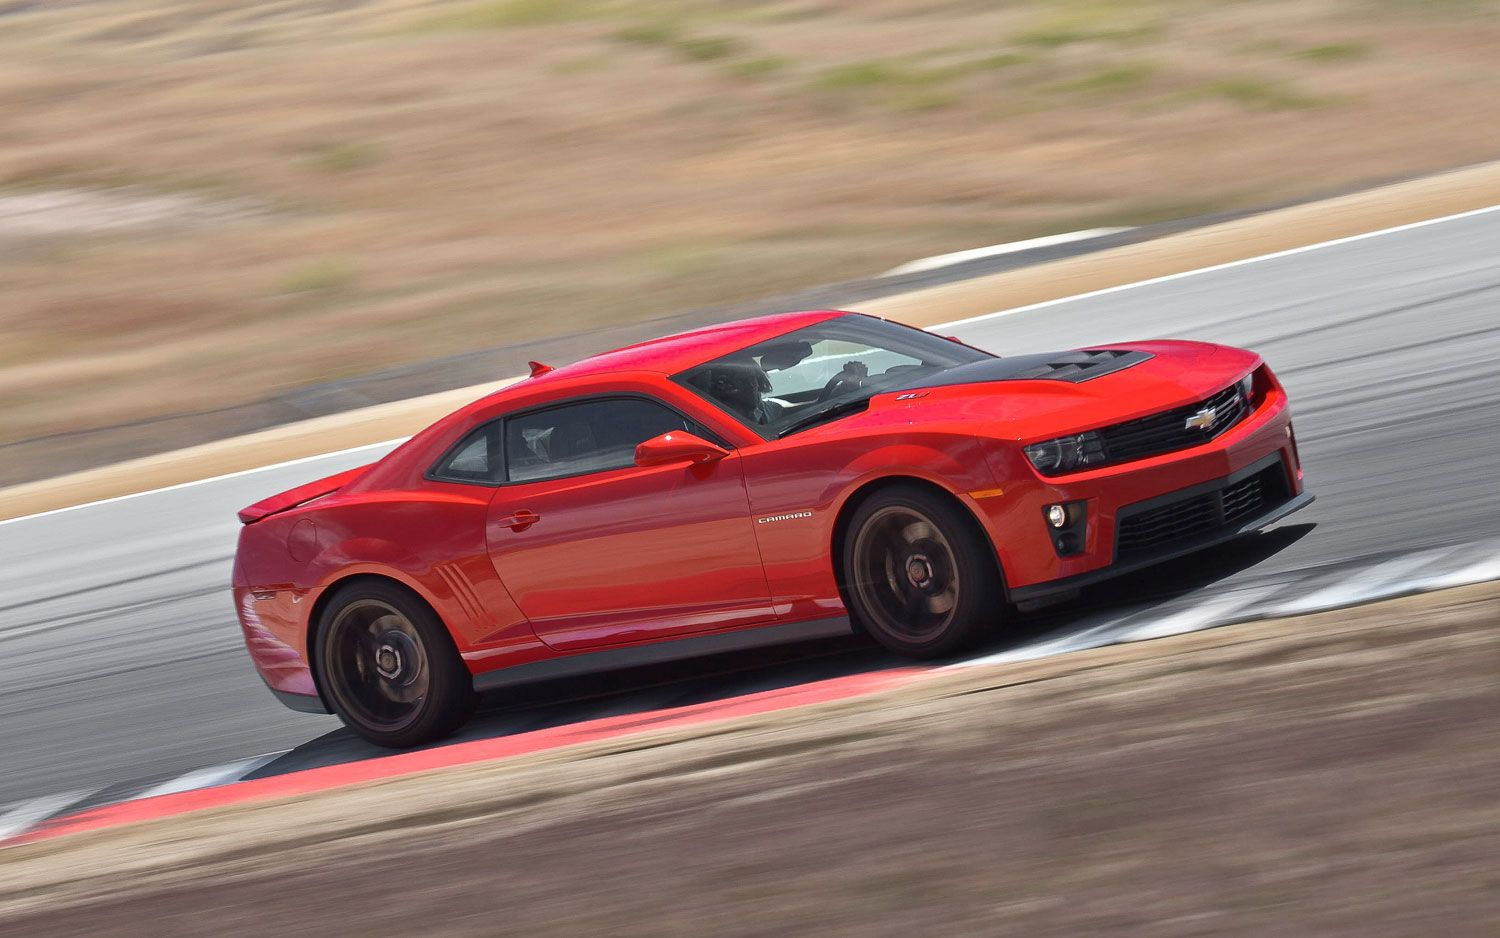 Best Driver's Car 2012 Camaro ZL1, Shelby GT500, Seven